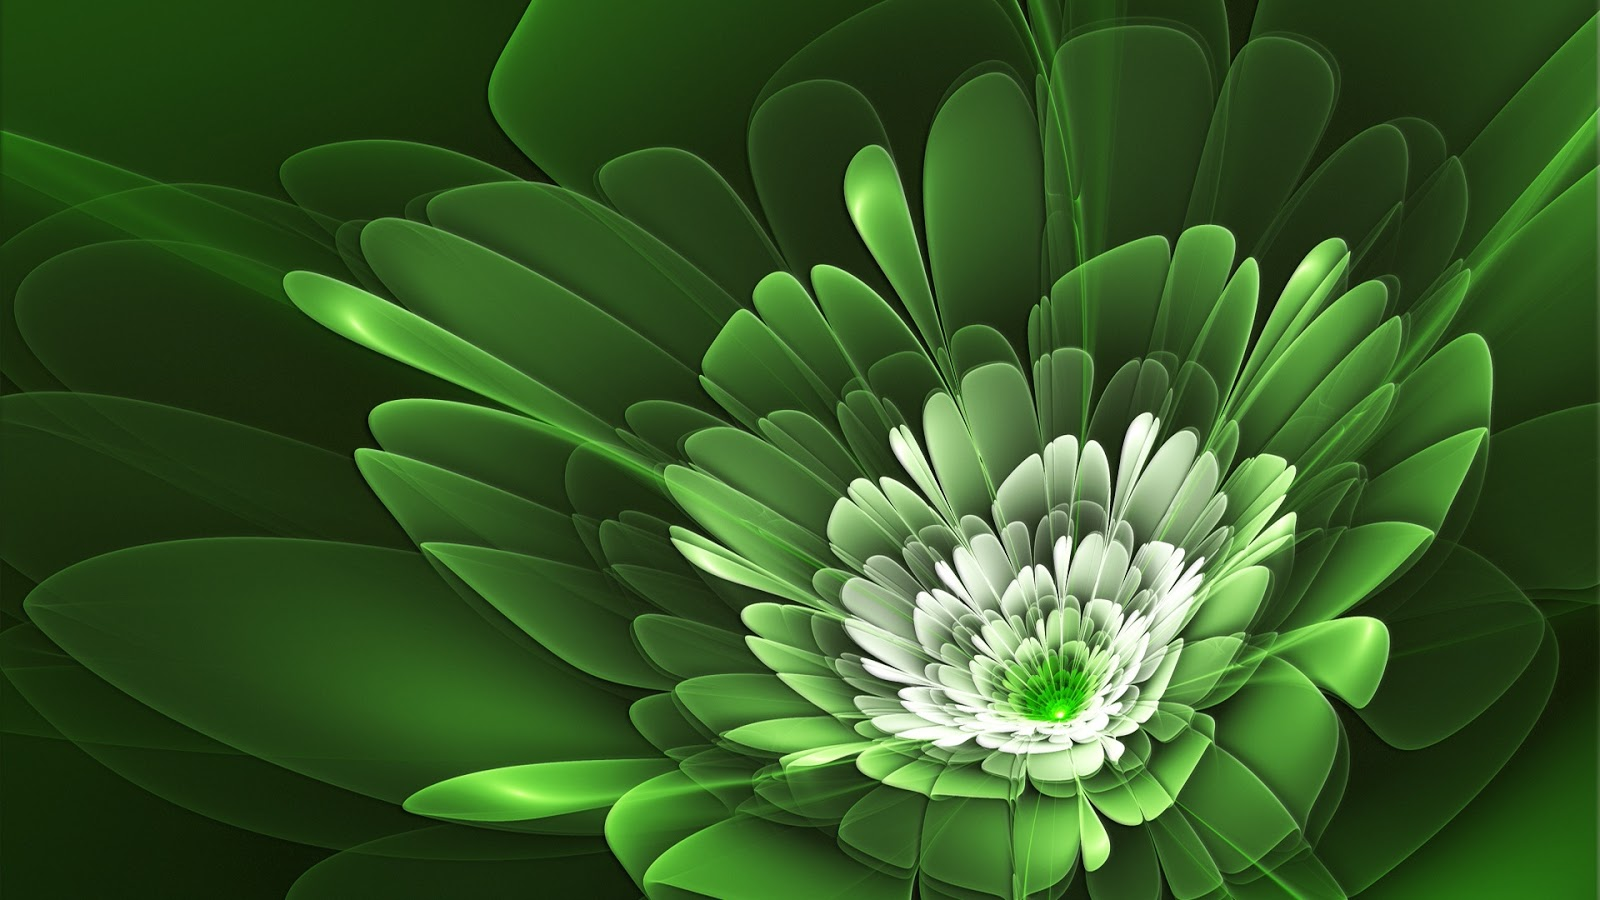 Puter Wallpaper 3D Synthesis Of 3D Wallpapers For The